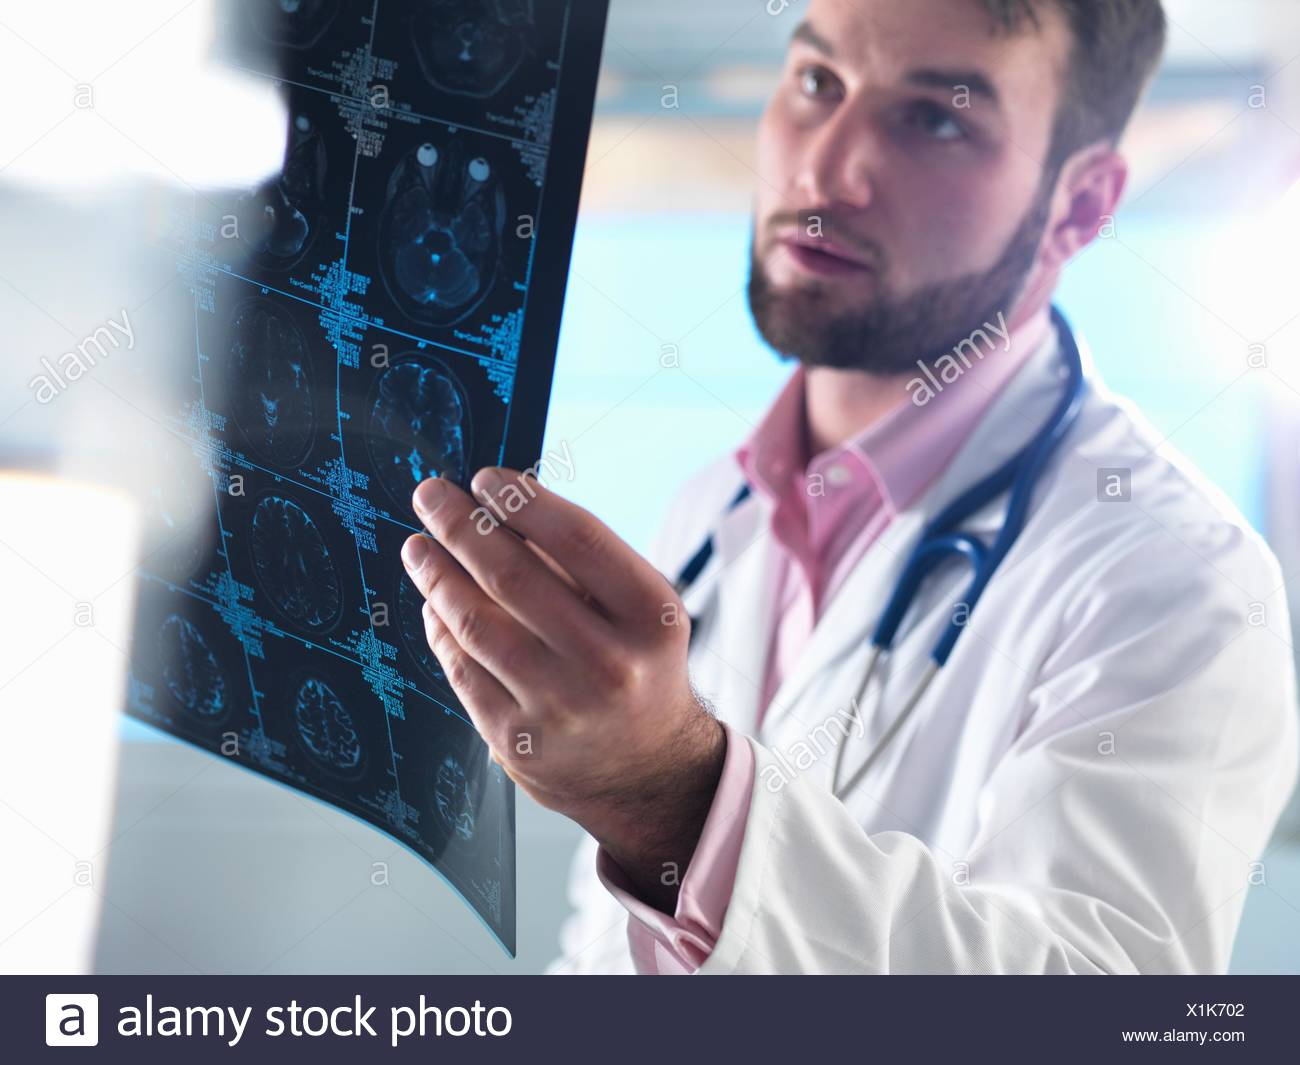 Junior doctor examining a brain scan in hospital - Stock Image